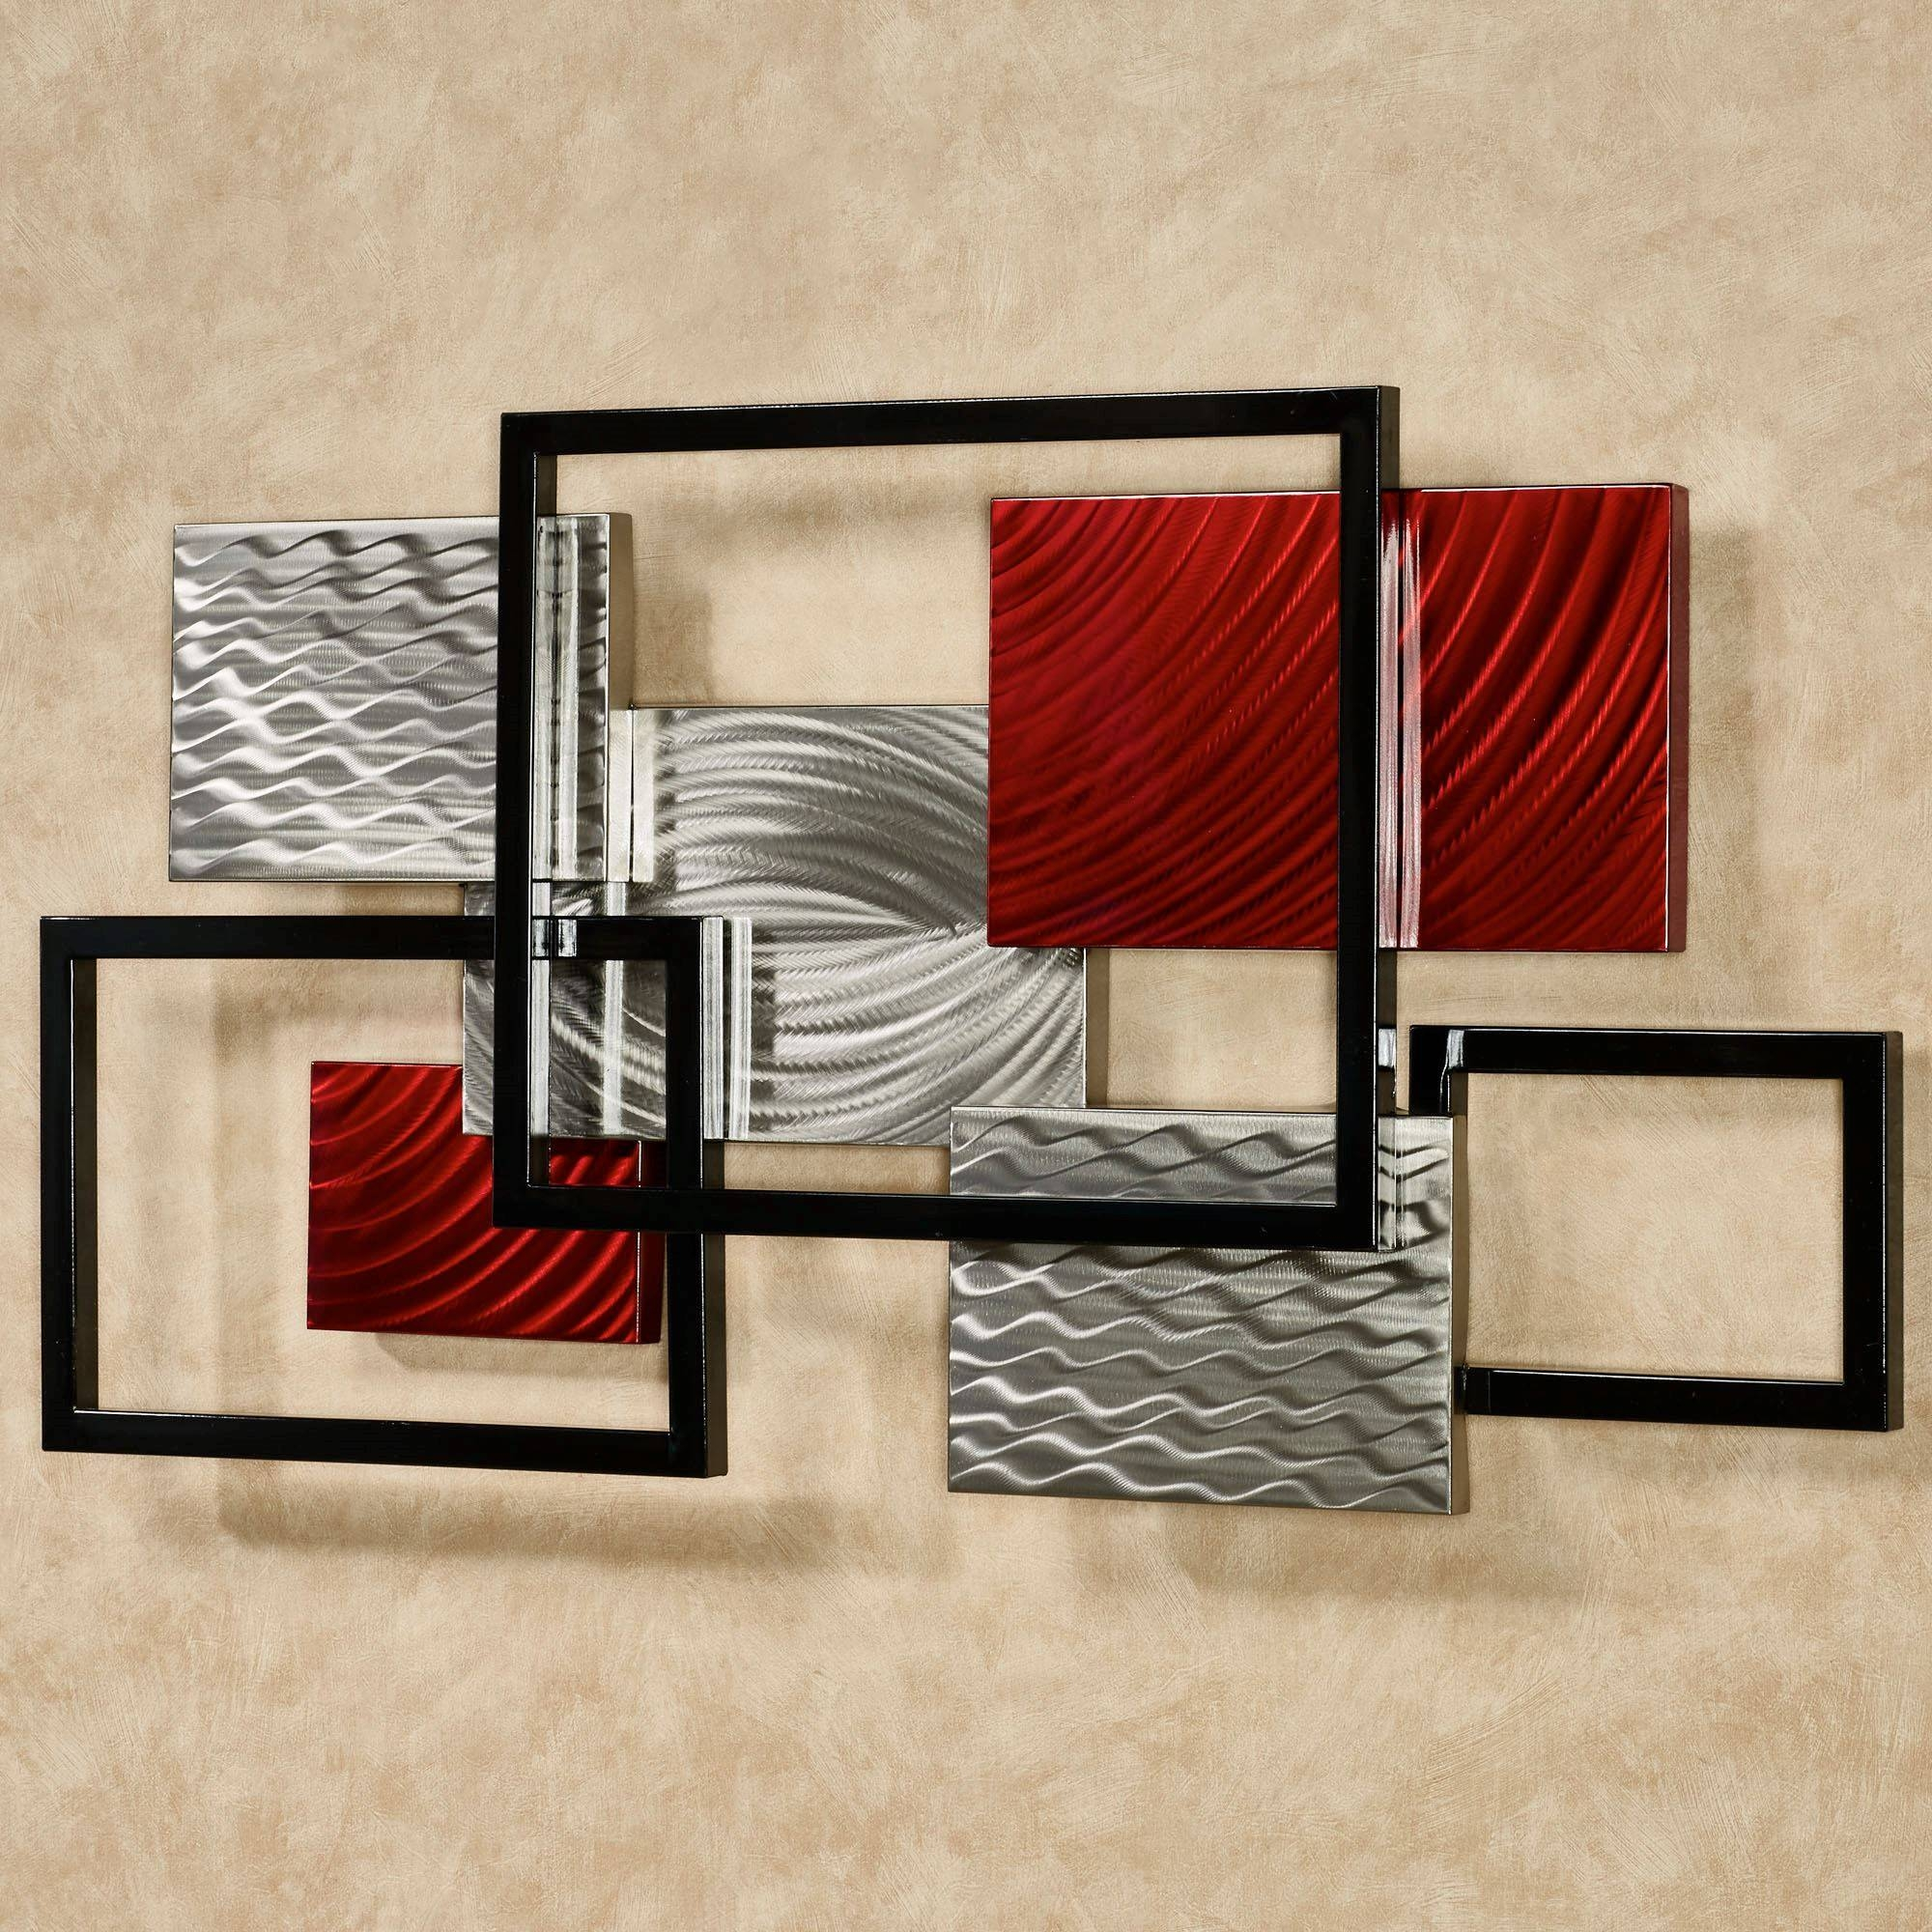 Metal Wall Art Sculptures | Touch Of Class Inside Most Recently Released 3D Metal Wall Art Sculptures (View 8 of 20)